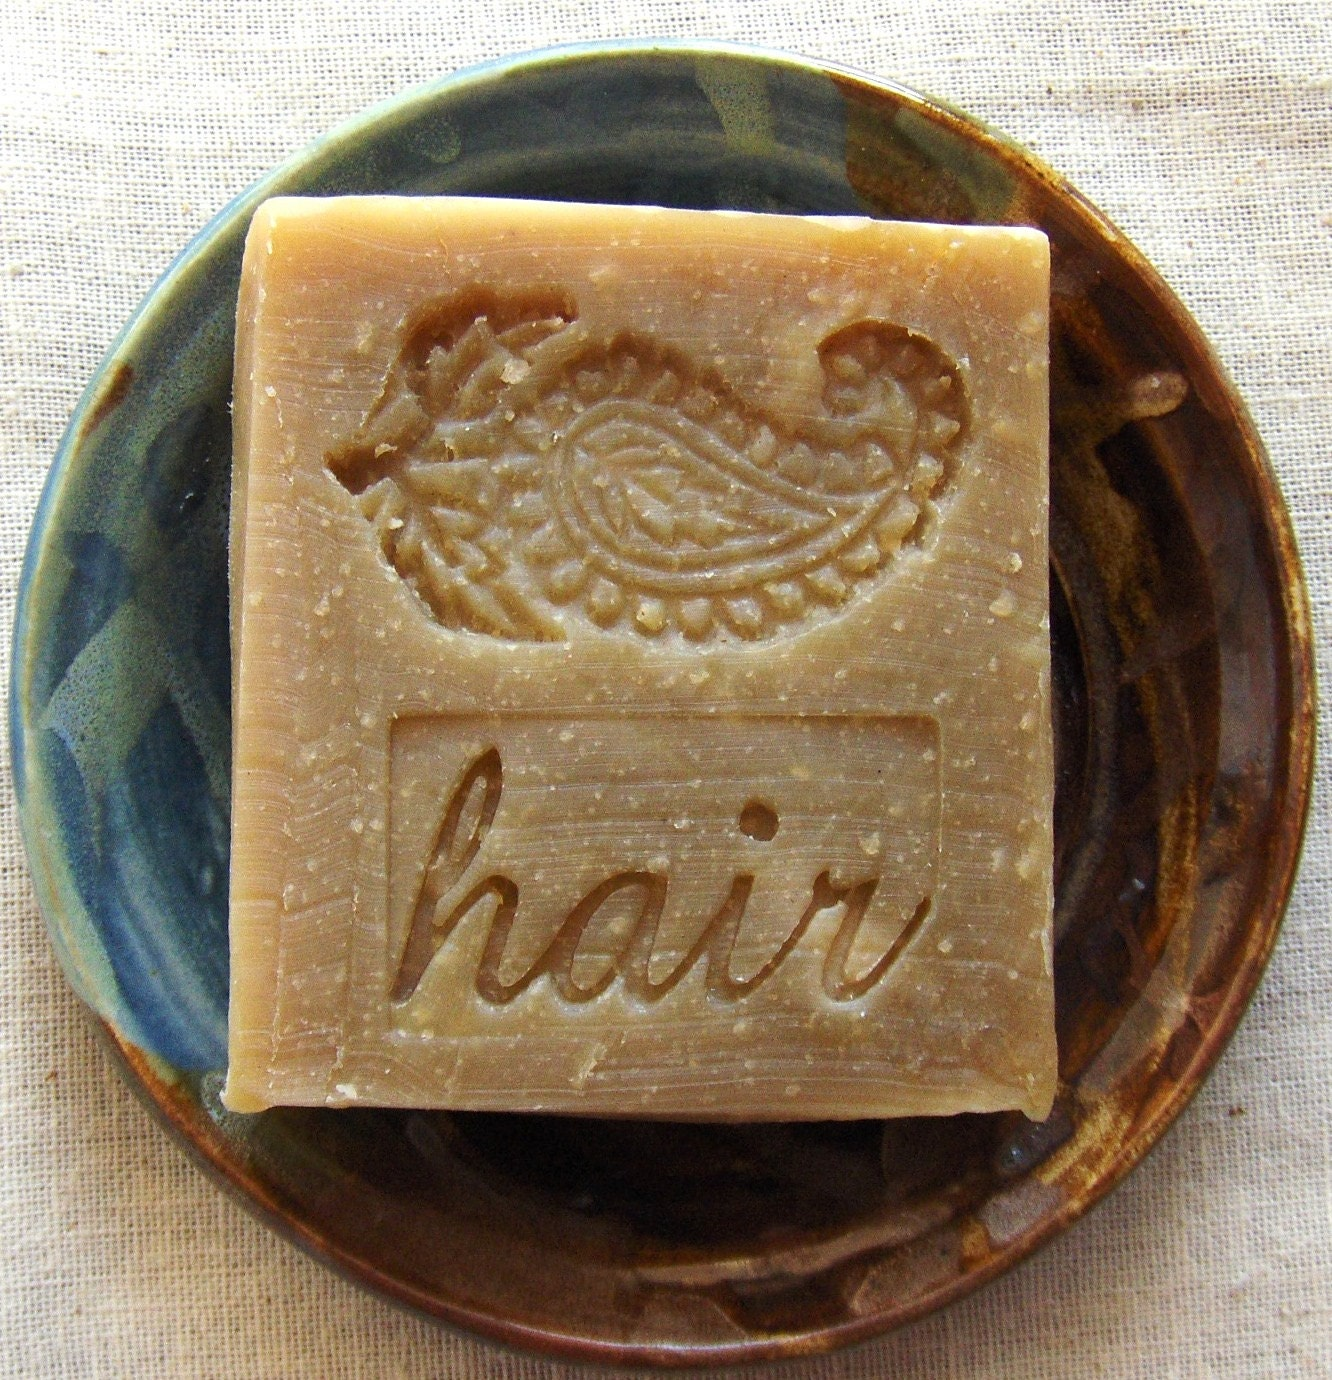 Henna Shampoo Bar with Jojoba - Unscented Shampoo Bar - Vegan Shampoo Bar - SLS free - No animal testing - AquarianBath